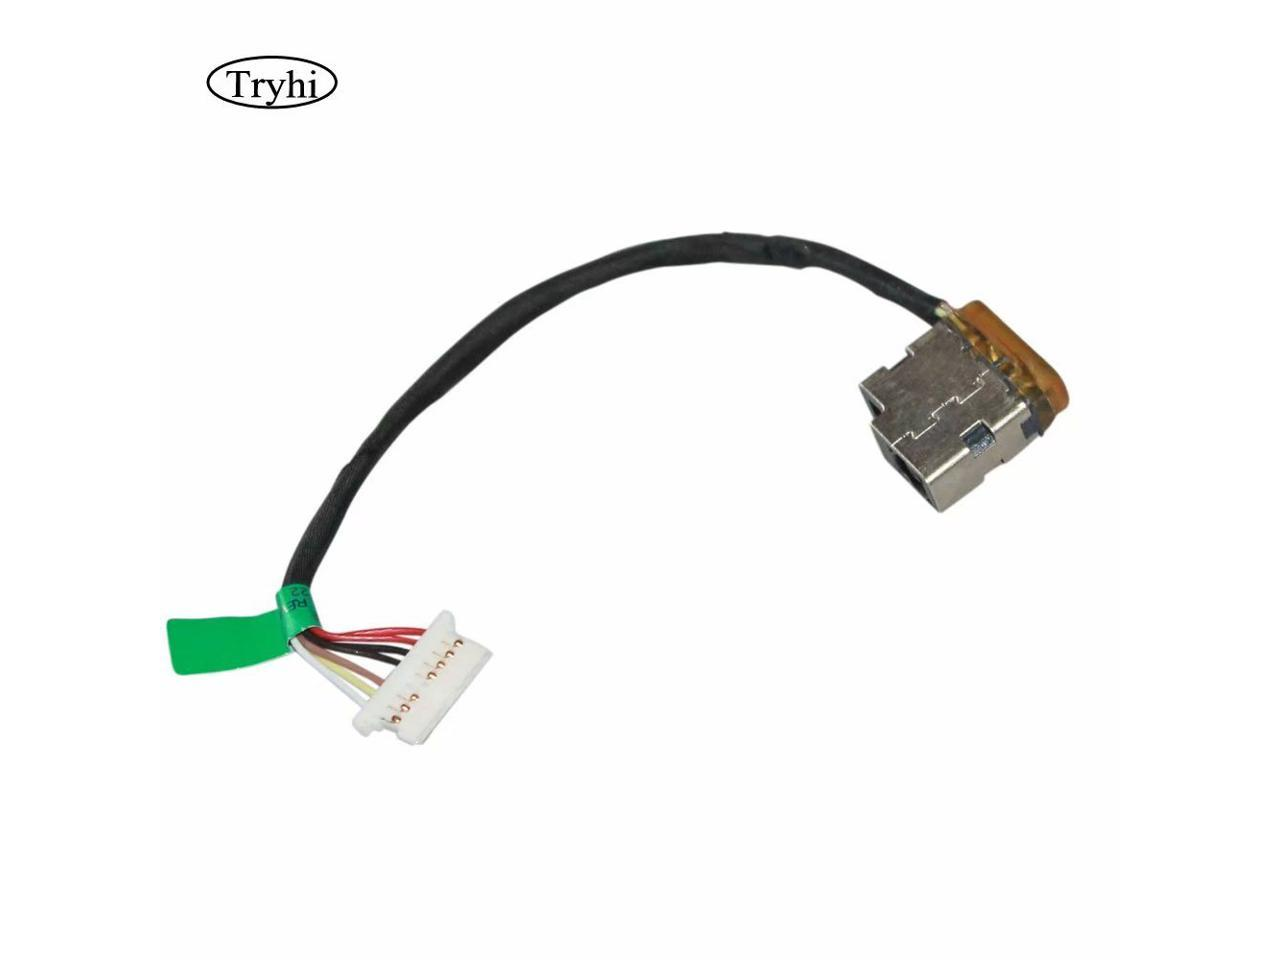 New Laptop AC DC Power Jack plug in charging port Socket Connector with Cable Harness For HP 240 246 250 255 G4 G5 799736-S57 799736-T57 799736-F57 799736-Y57